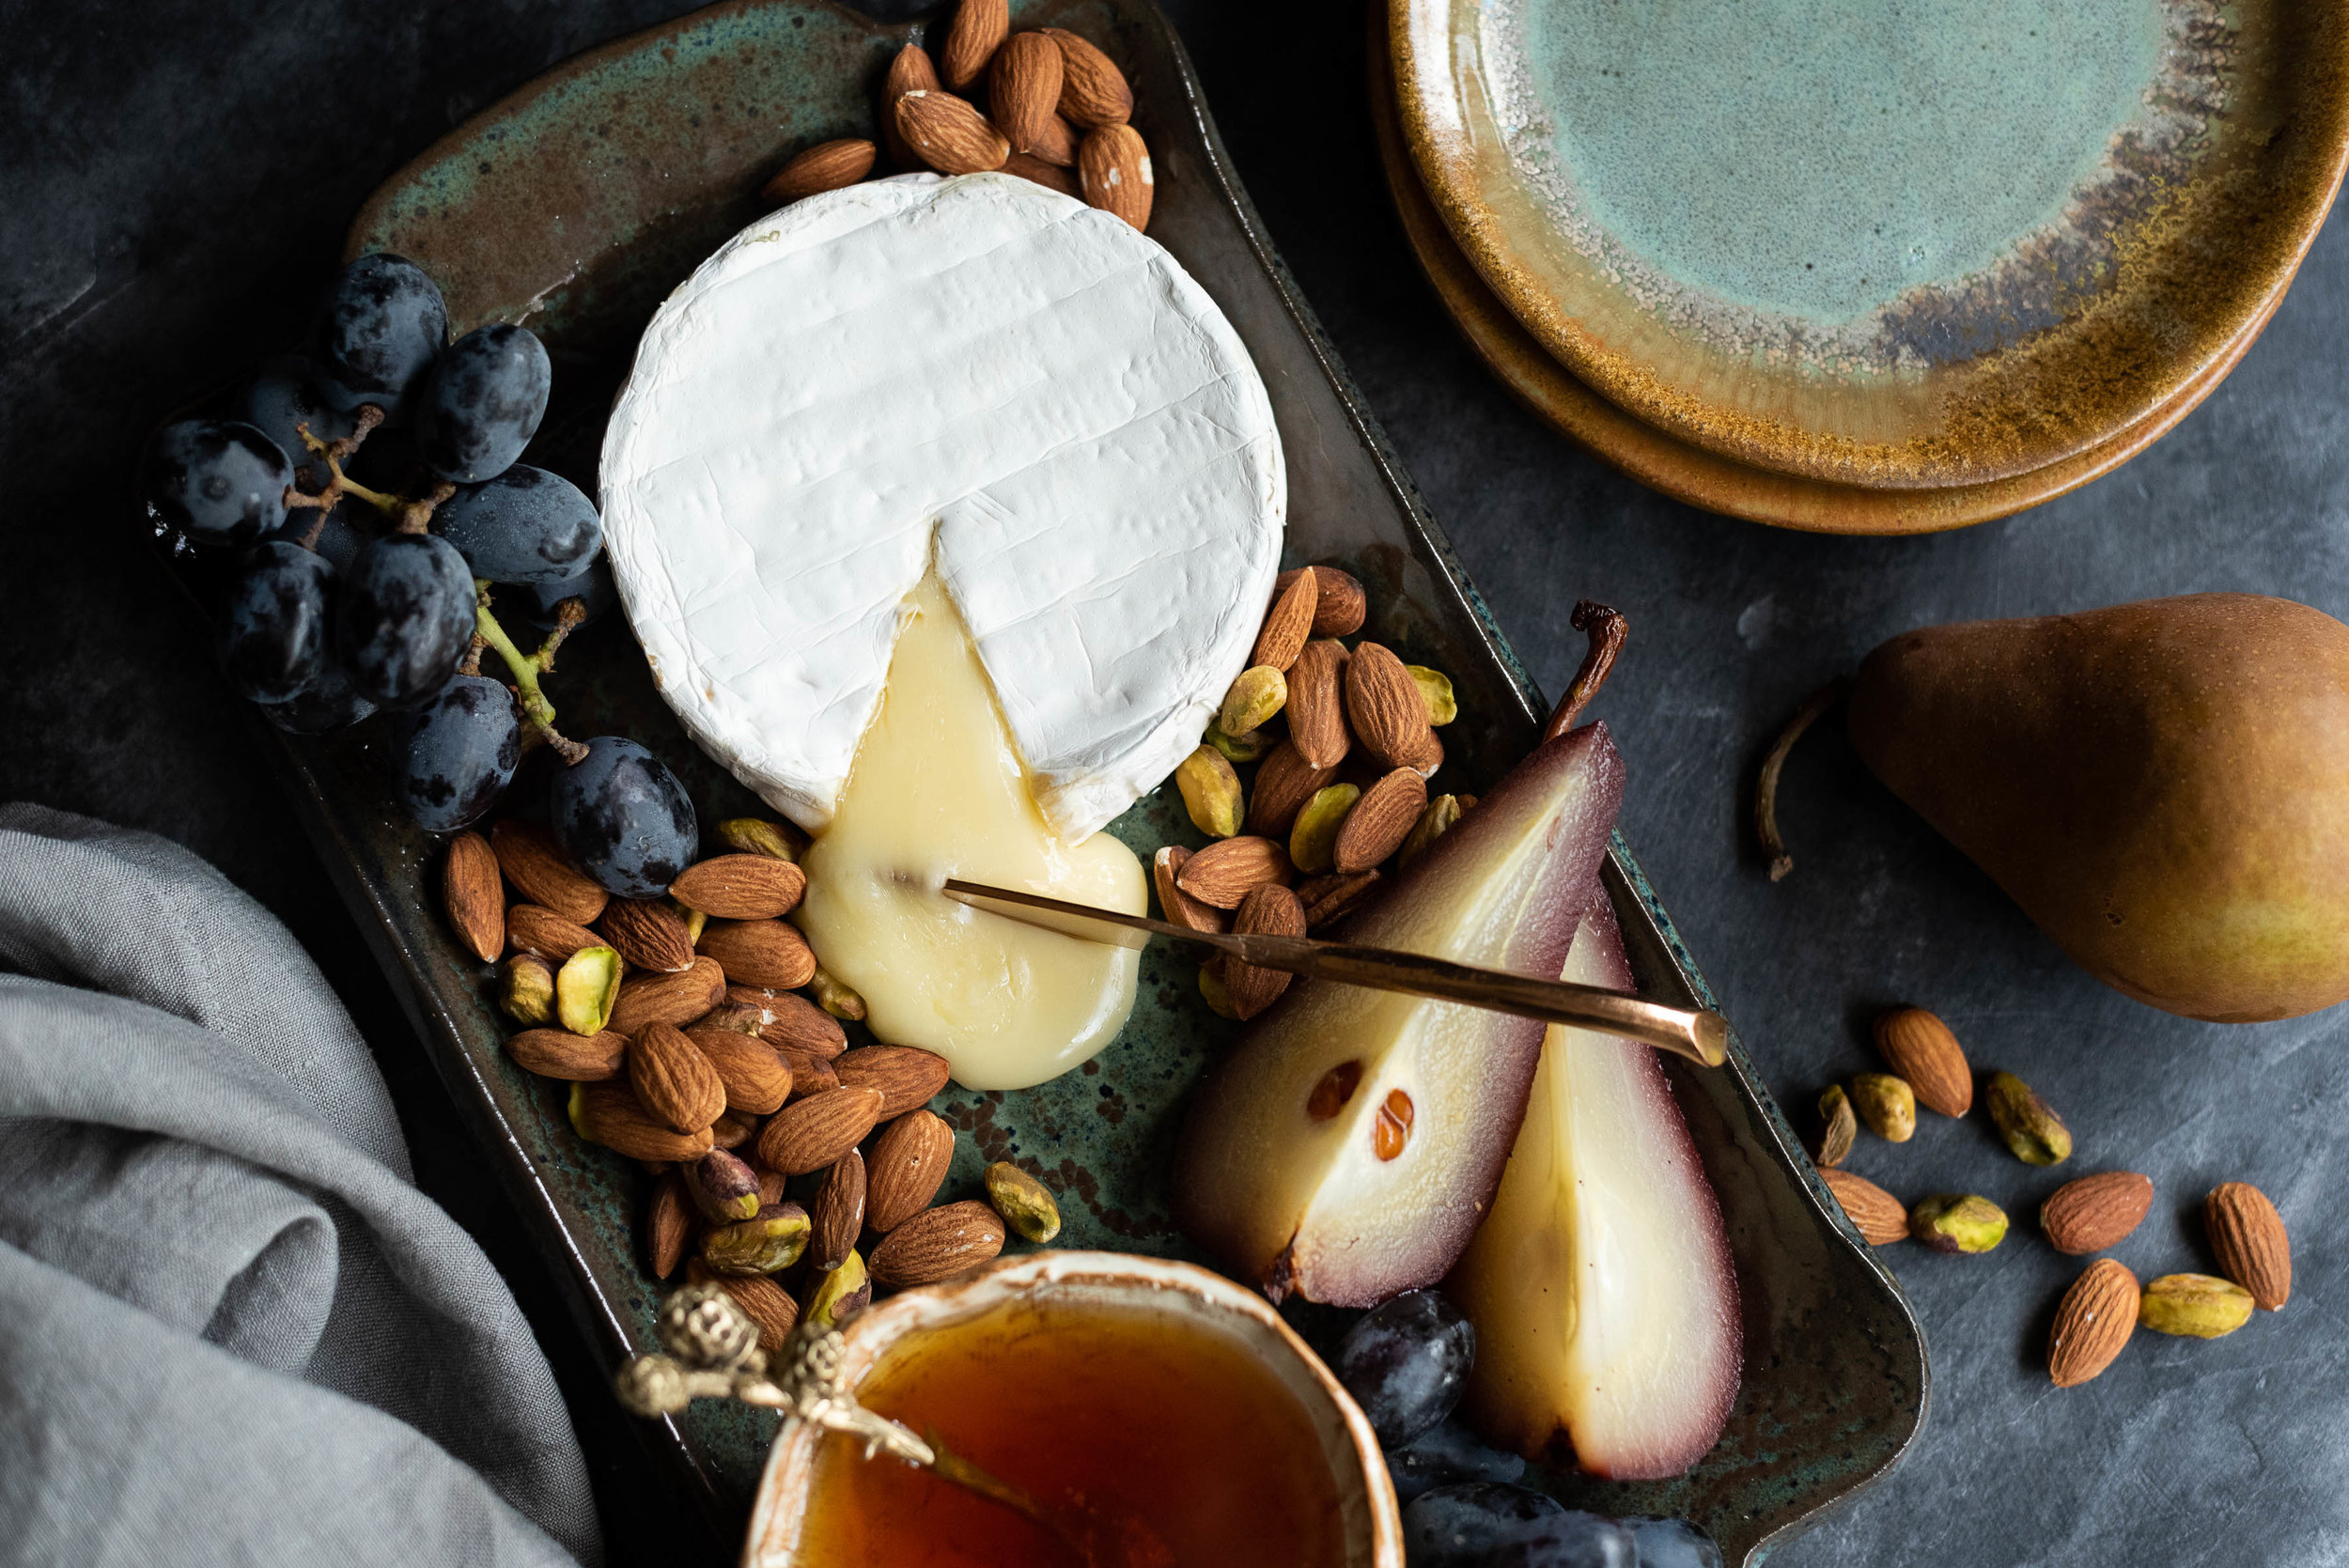 Date night cheese plate for two  |  styling by jennifer oatsvall  |  photo by    alyssa joy photography